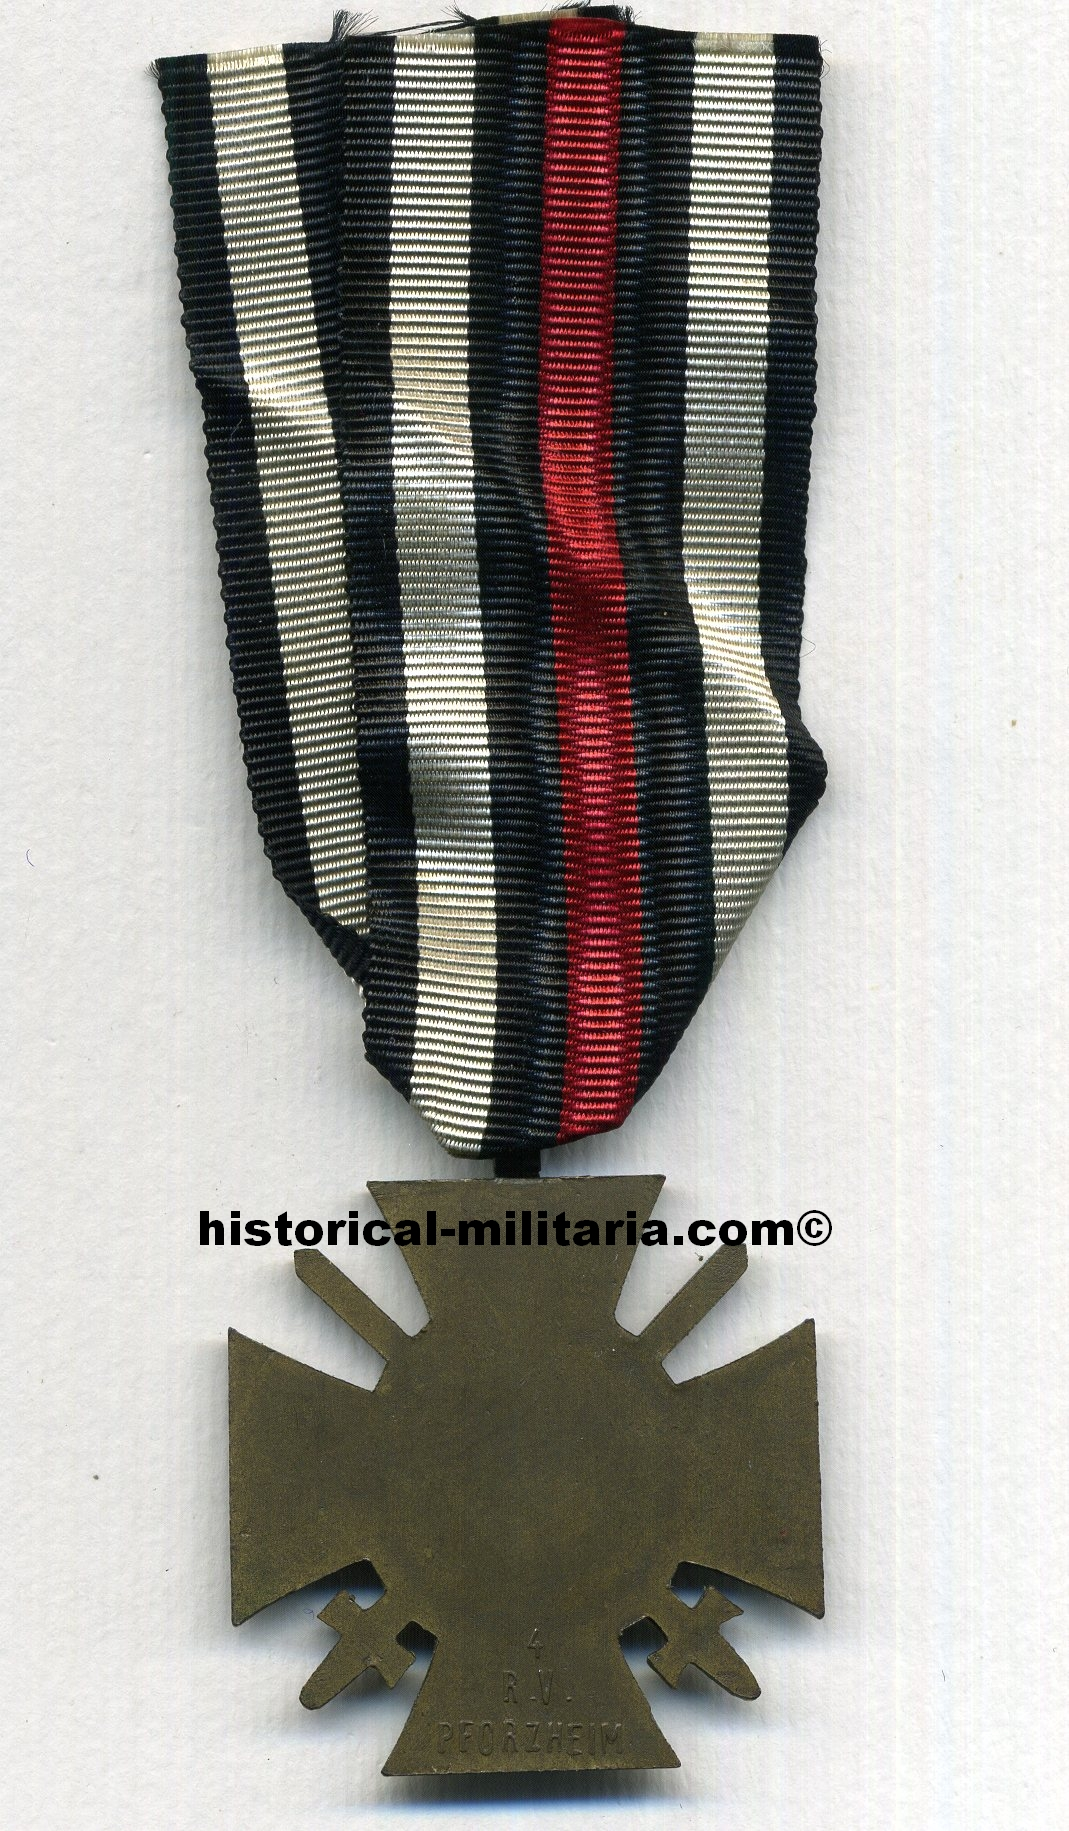 ORIGINAL Ehrenkreuz des Weltkieges 1914 - 1918 Frontkämpferkreuz punziert am Band - Original German IMPERIAL Cross Of Honour 1914 - 1918 with makers' marks and original ribbon